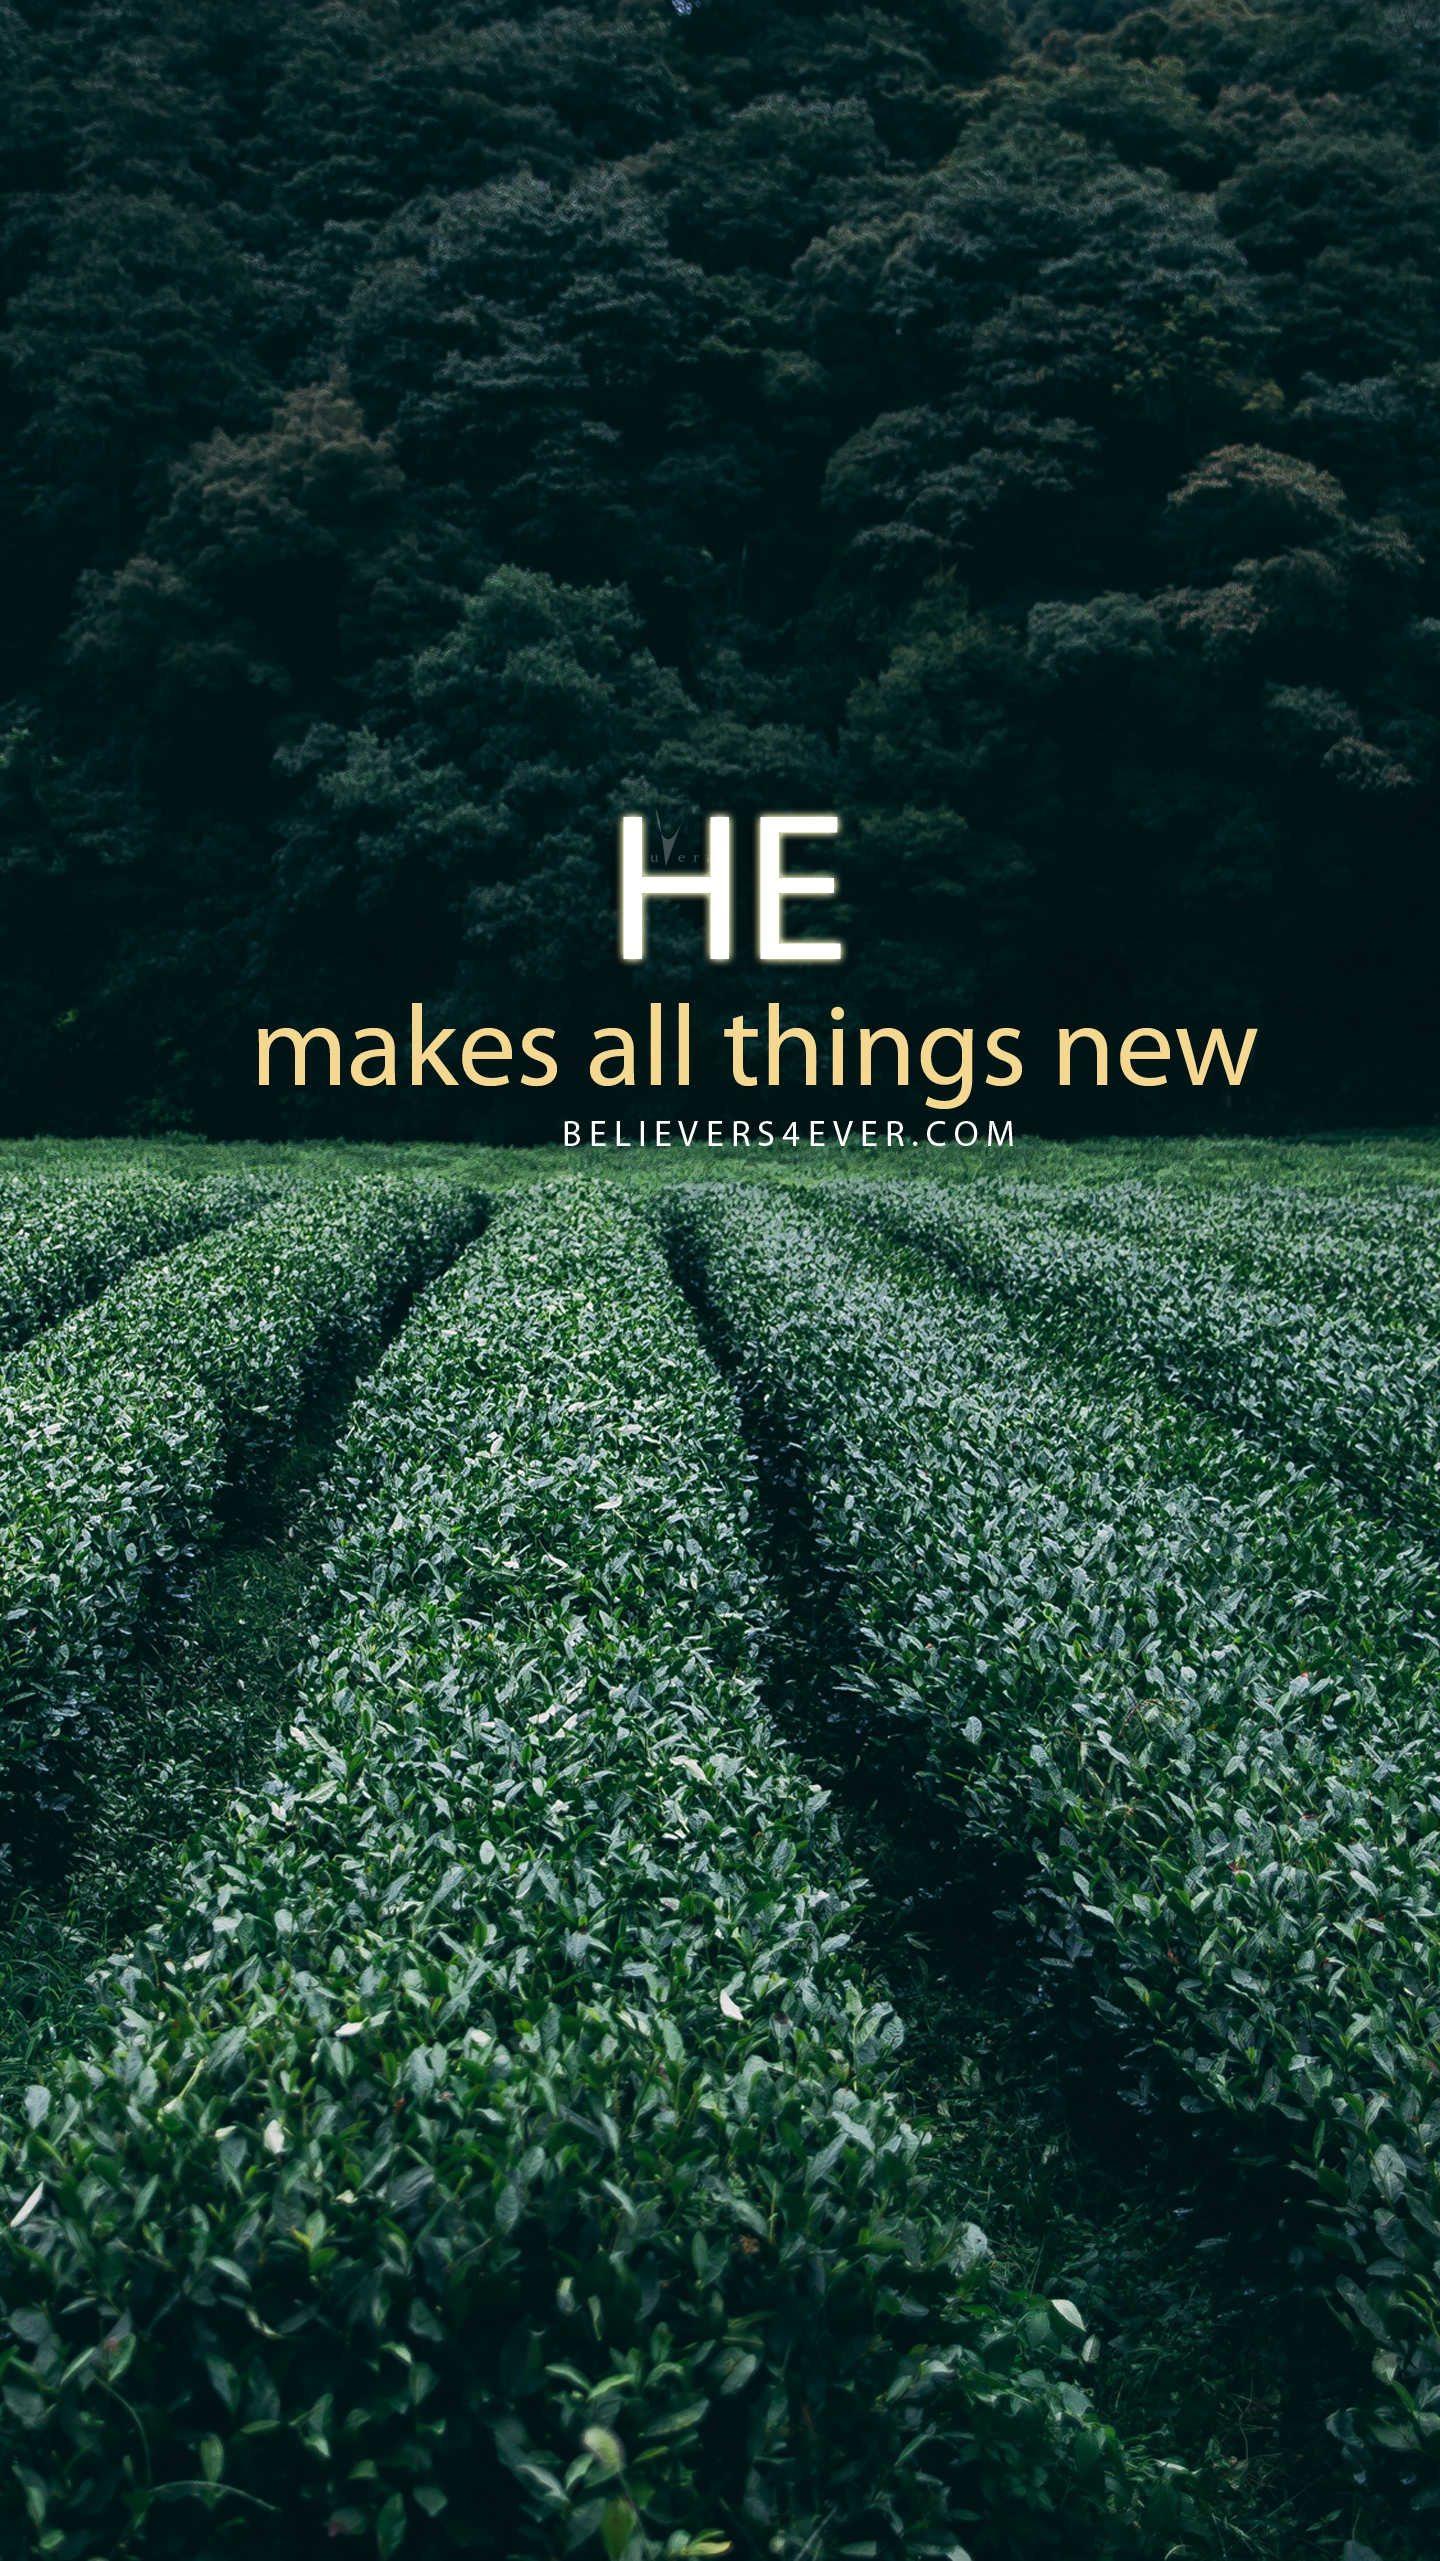 He makes all things new Christian wallpaper, Christian